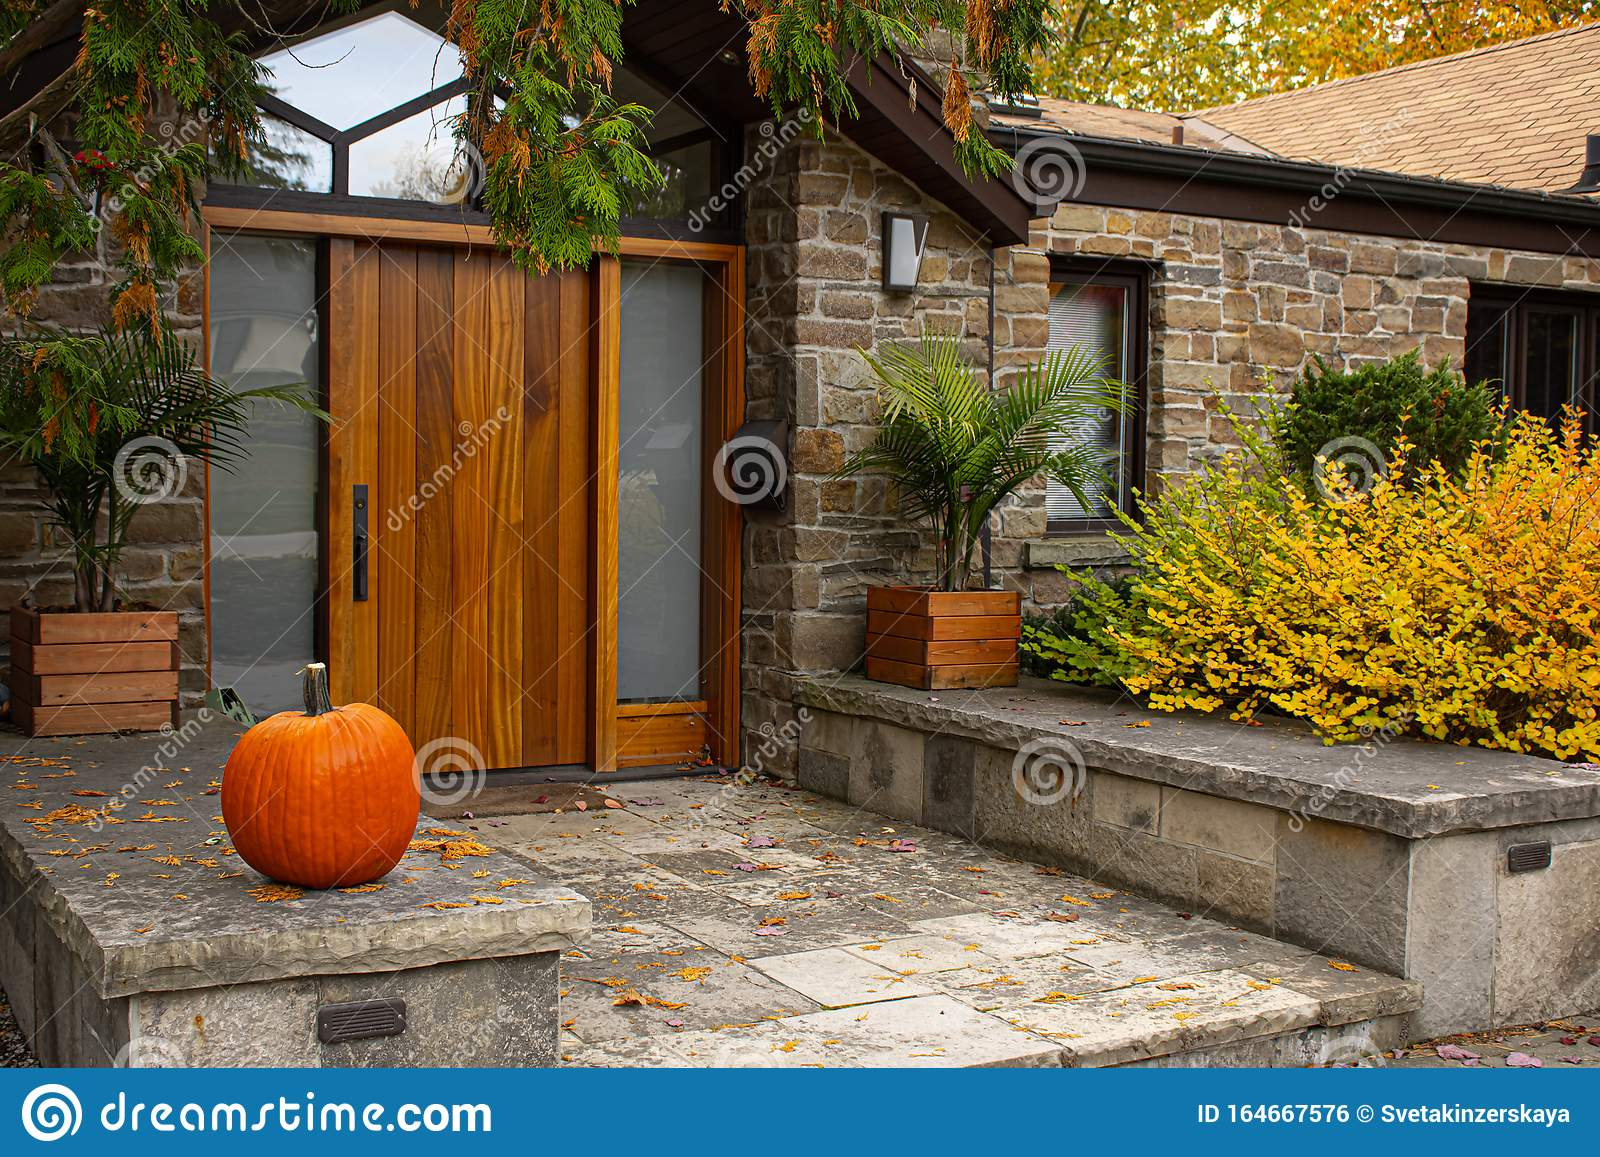 189 Fancy Front Doors Photos Free Royalty Free Stock Photos From Dreamstime